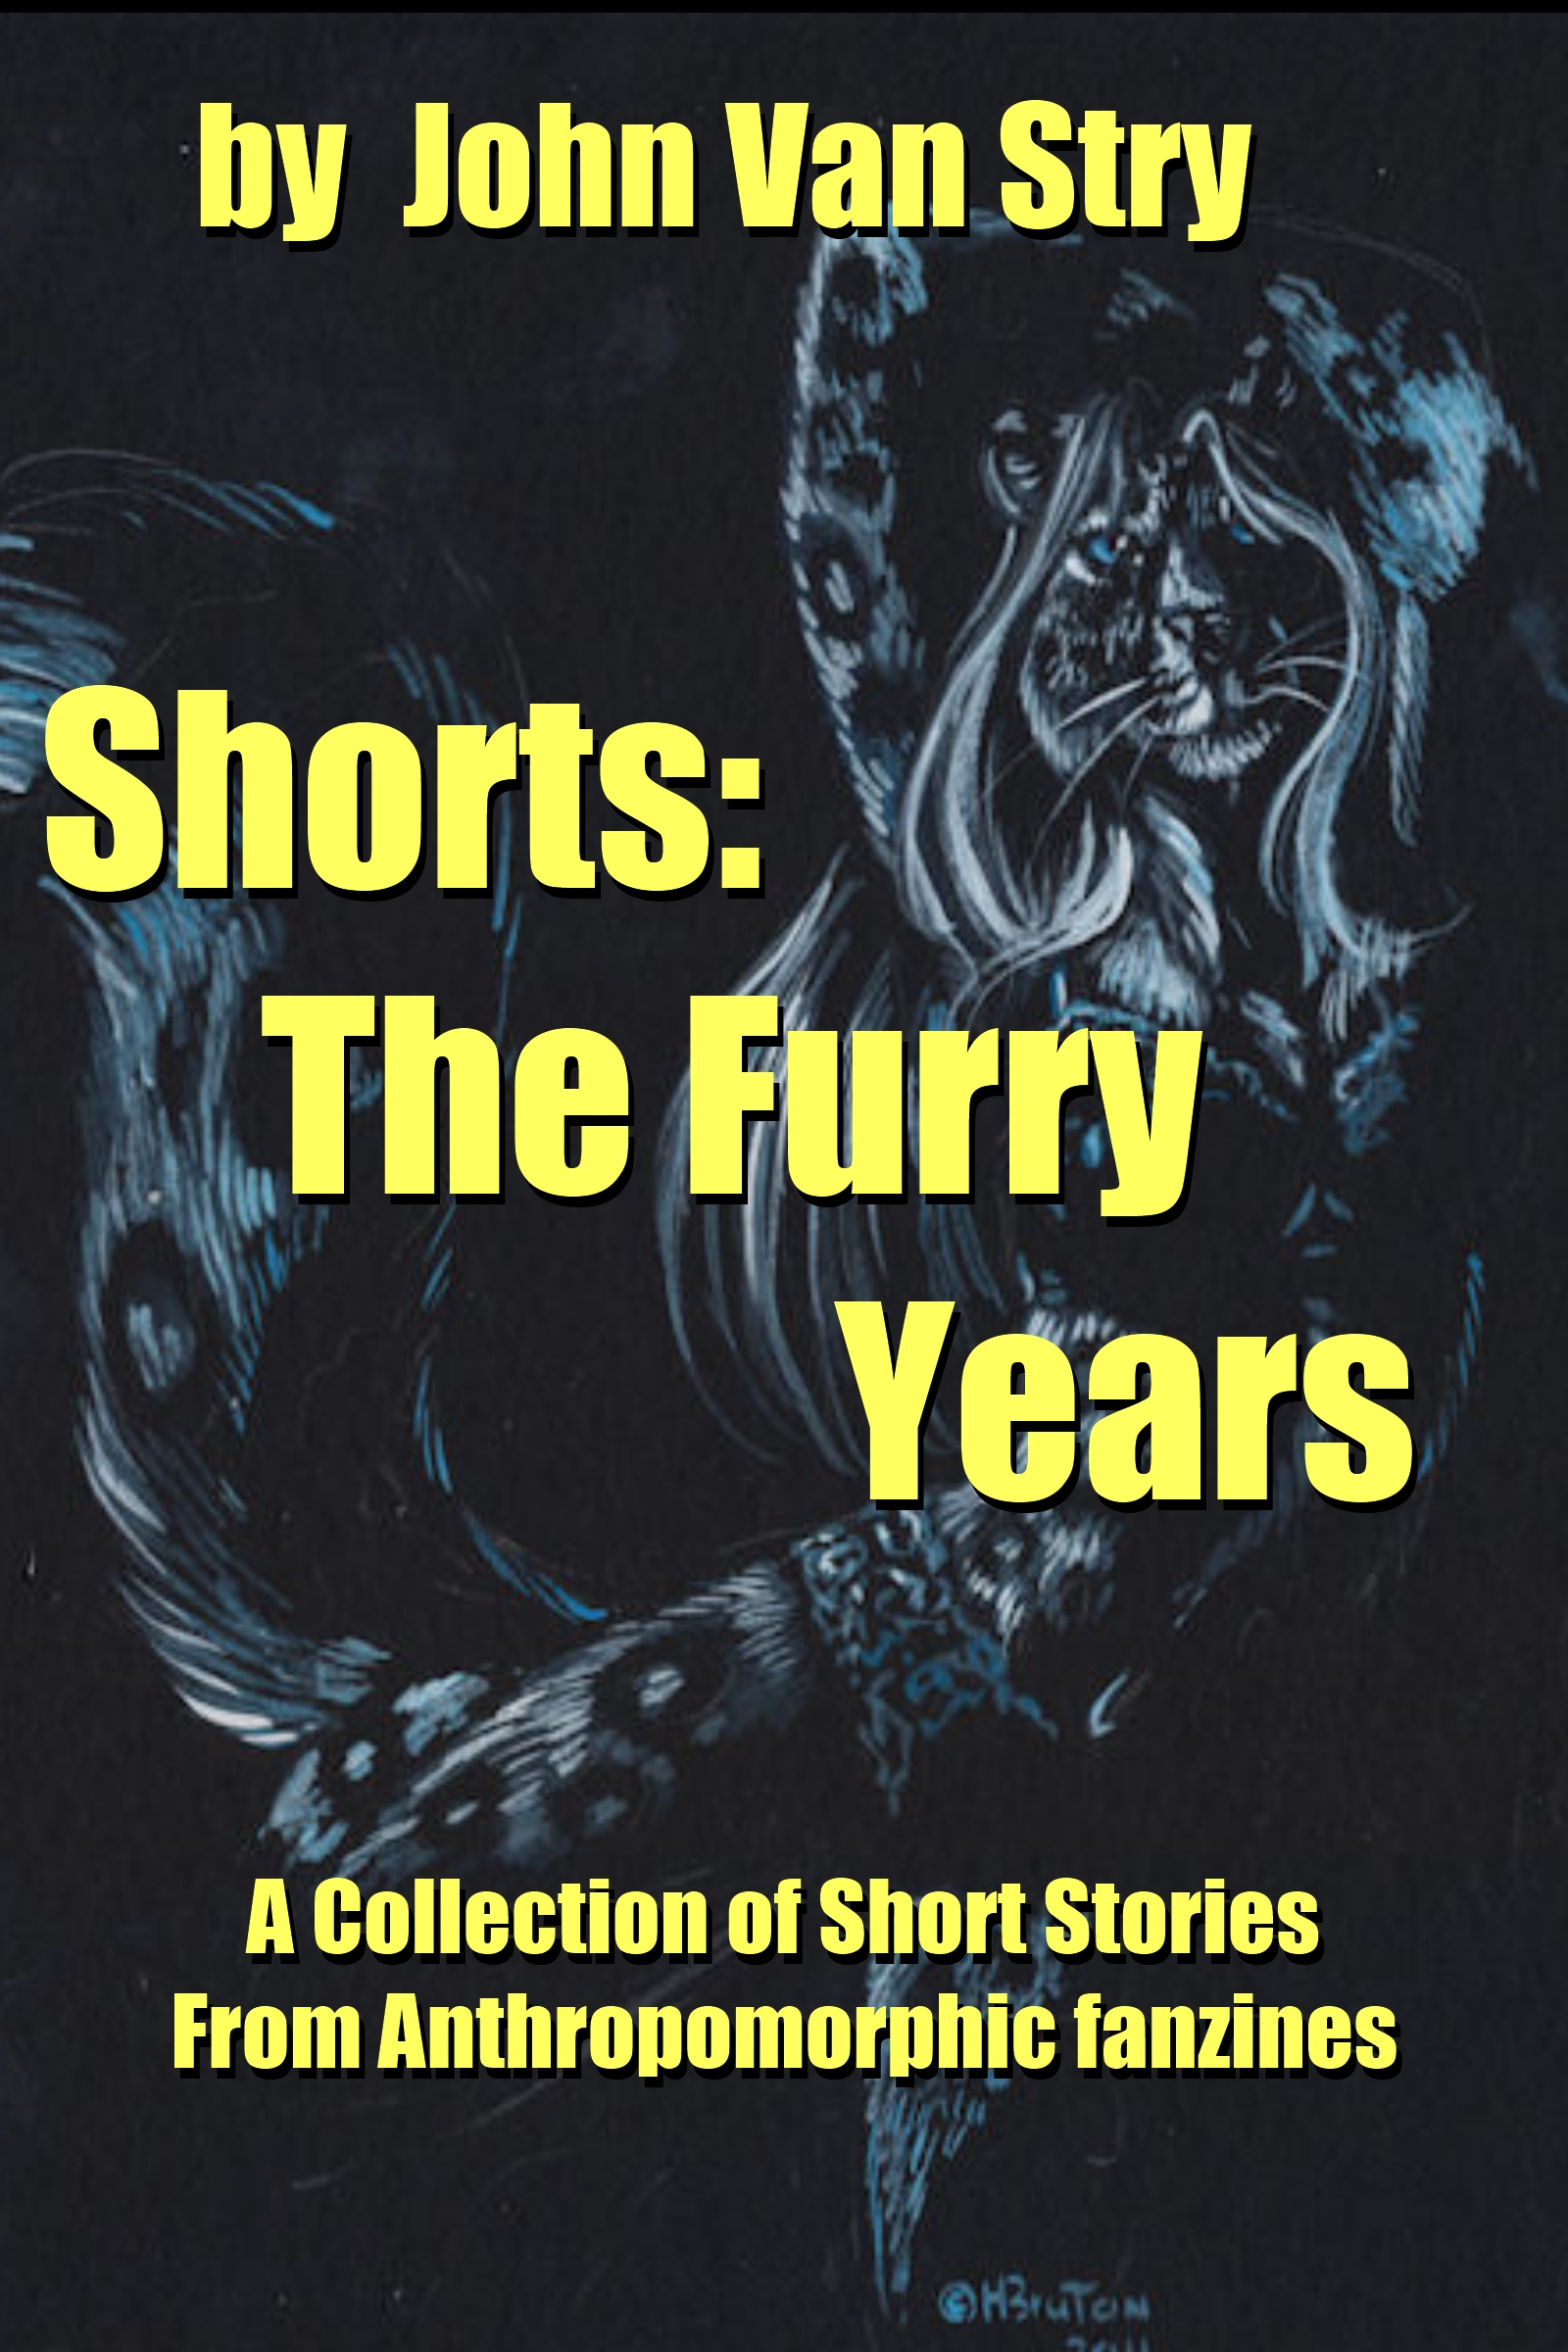 John Van Stry - Shorts: The Furry Years